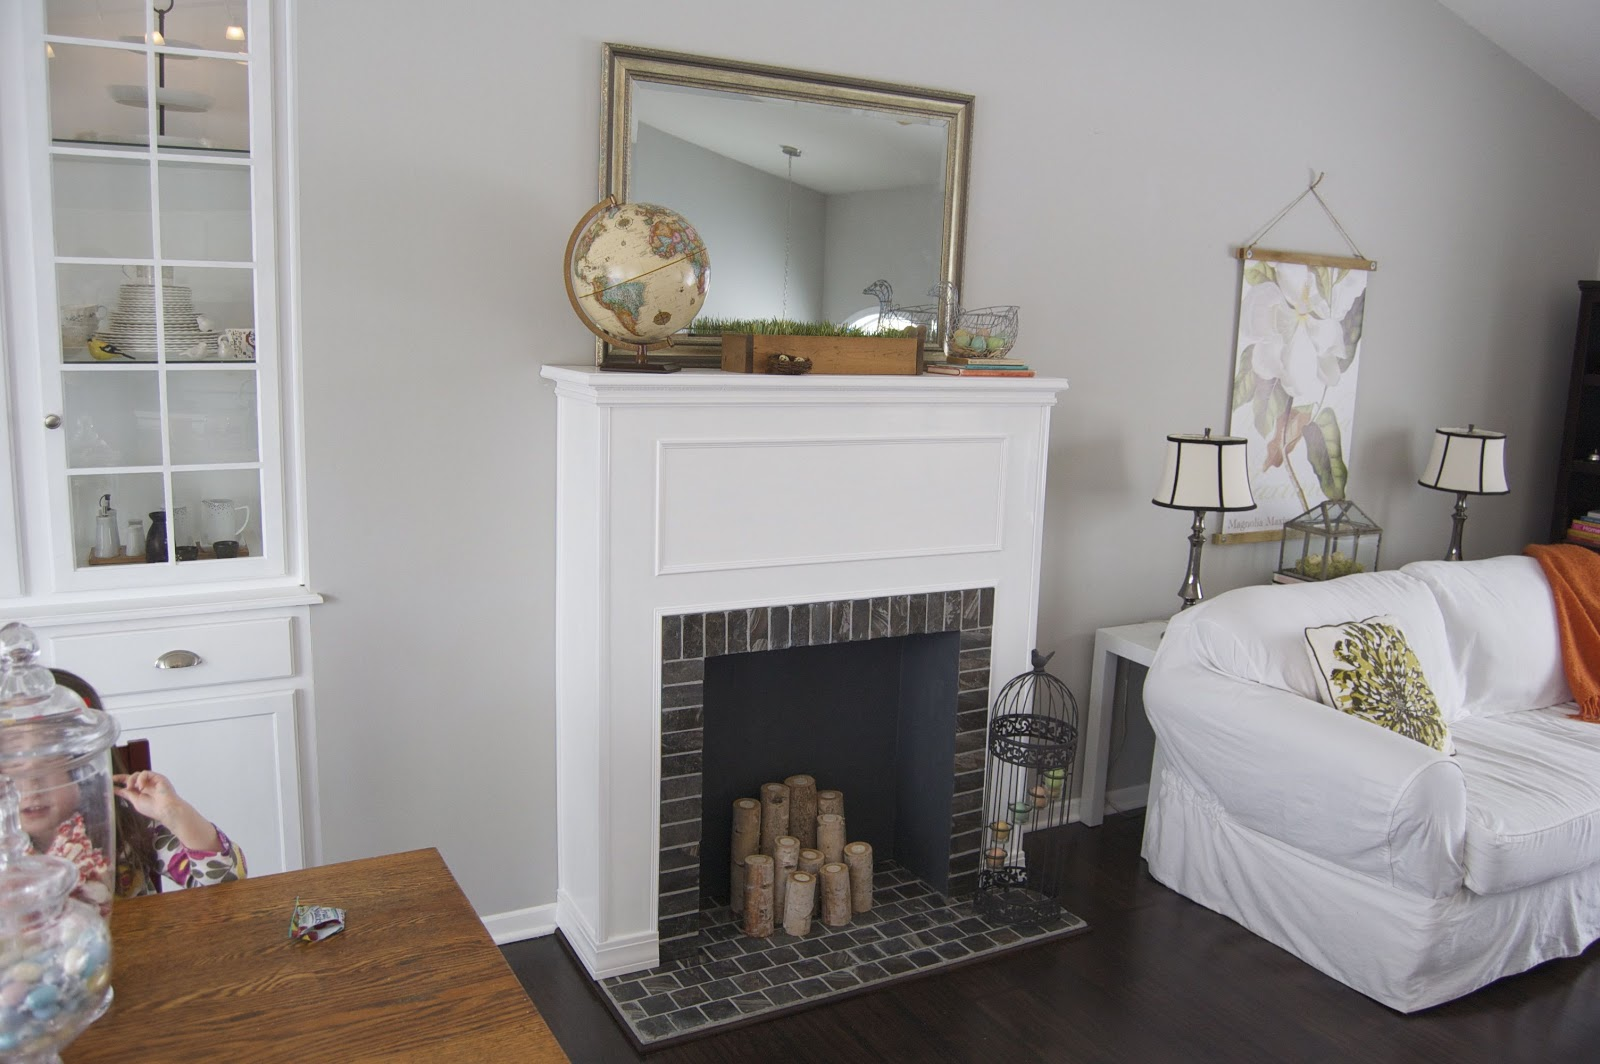 Diy faux fireplace mantel ideas fireplace design ideas for Dekokamin ikea